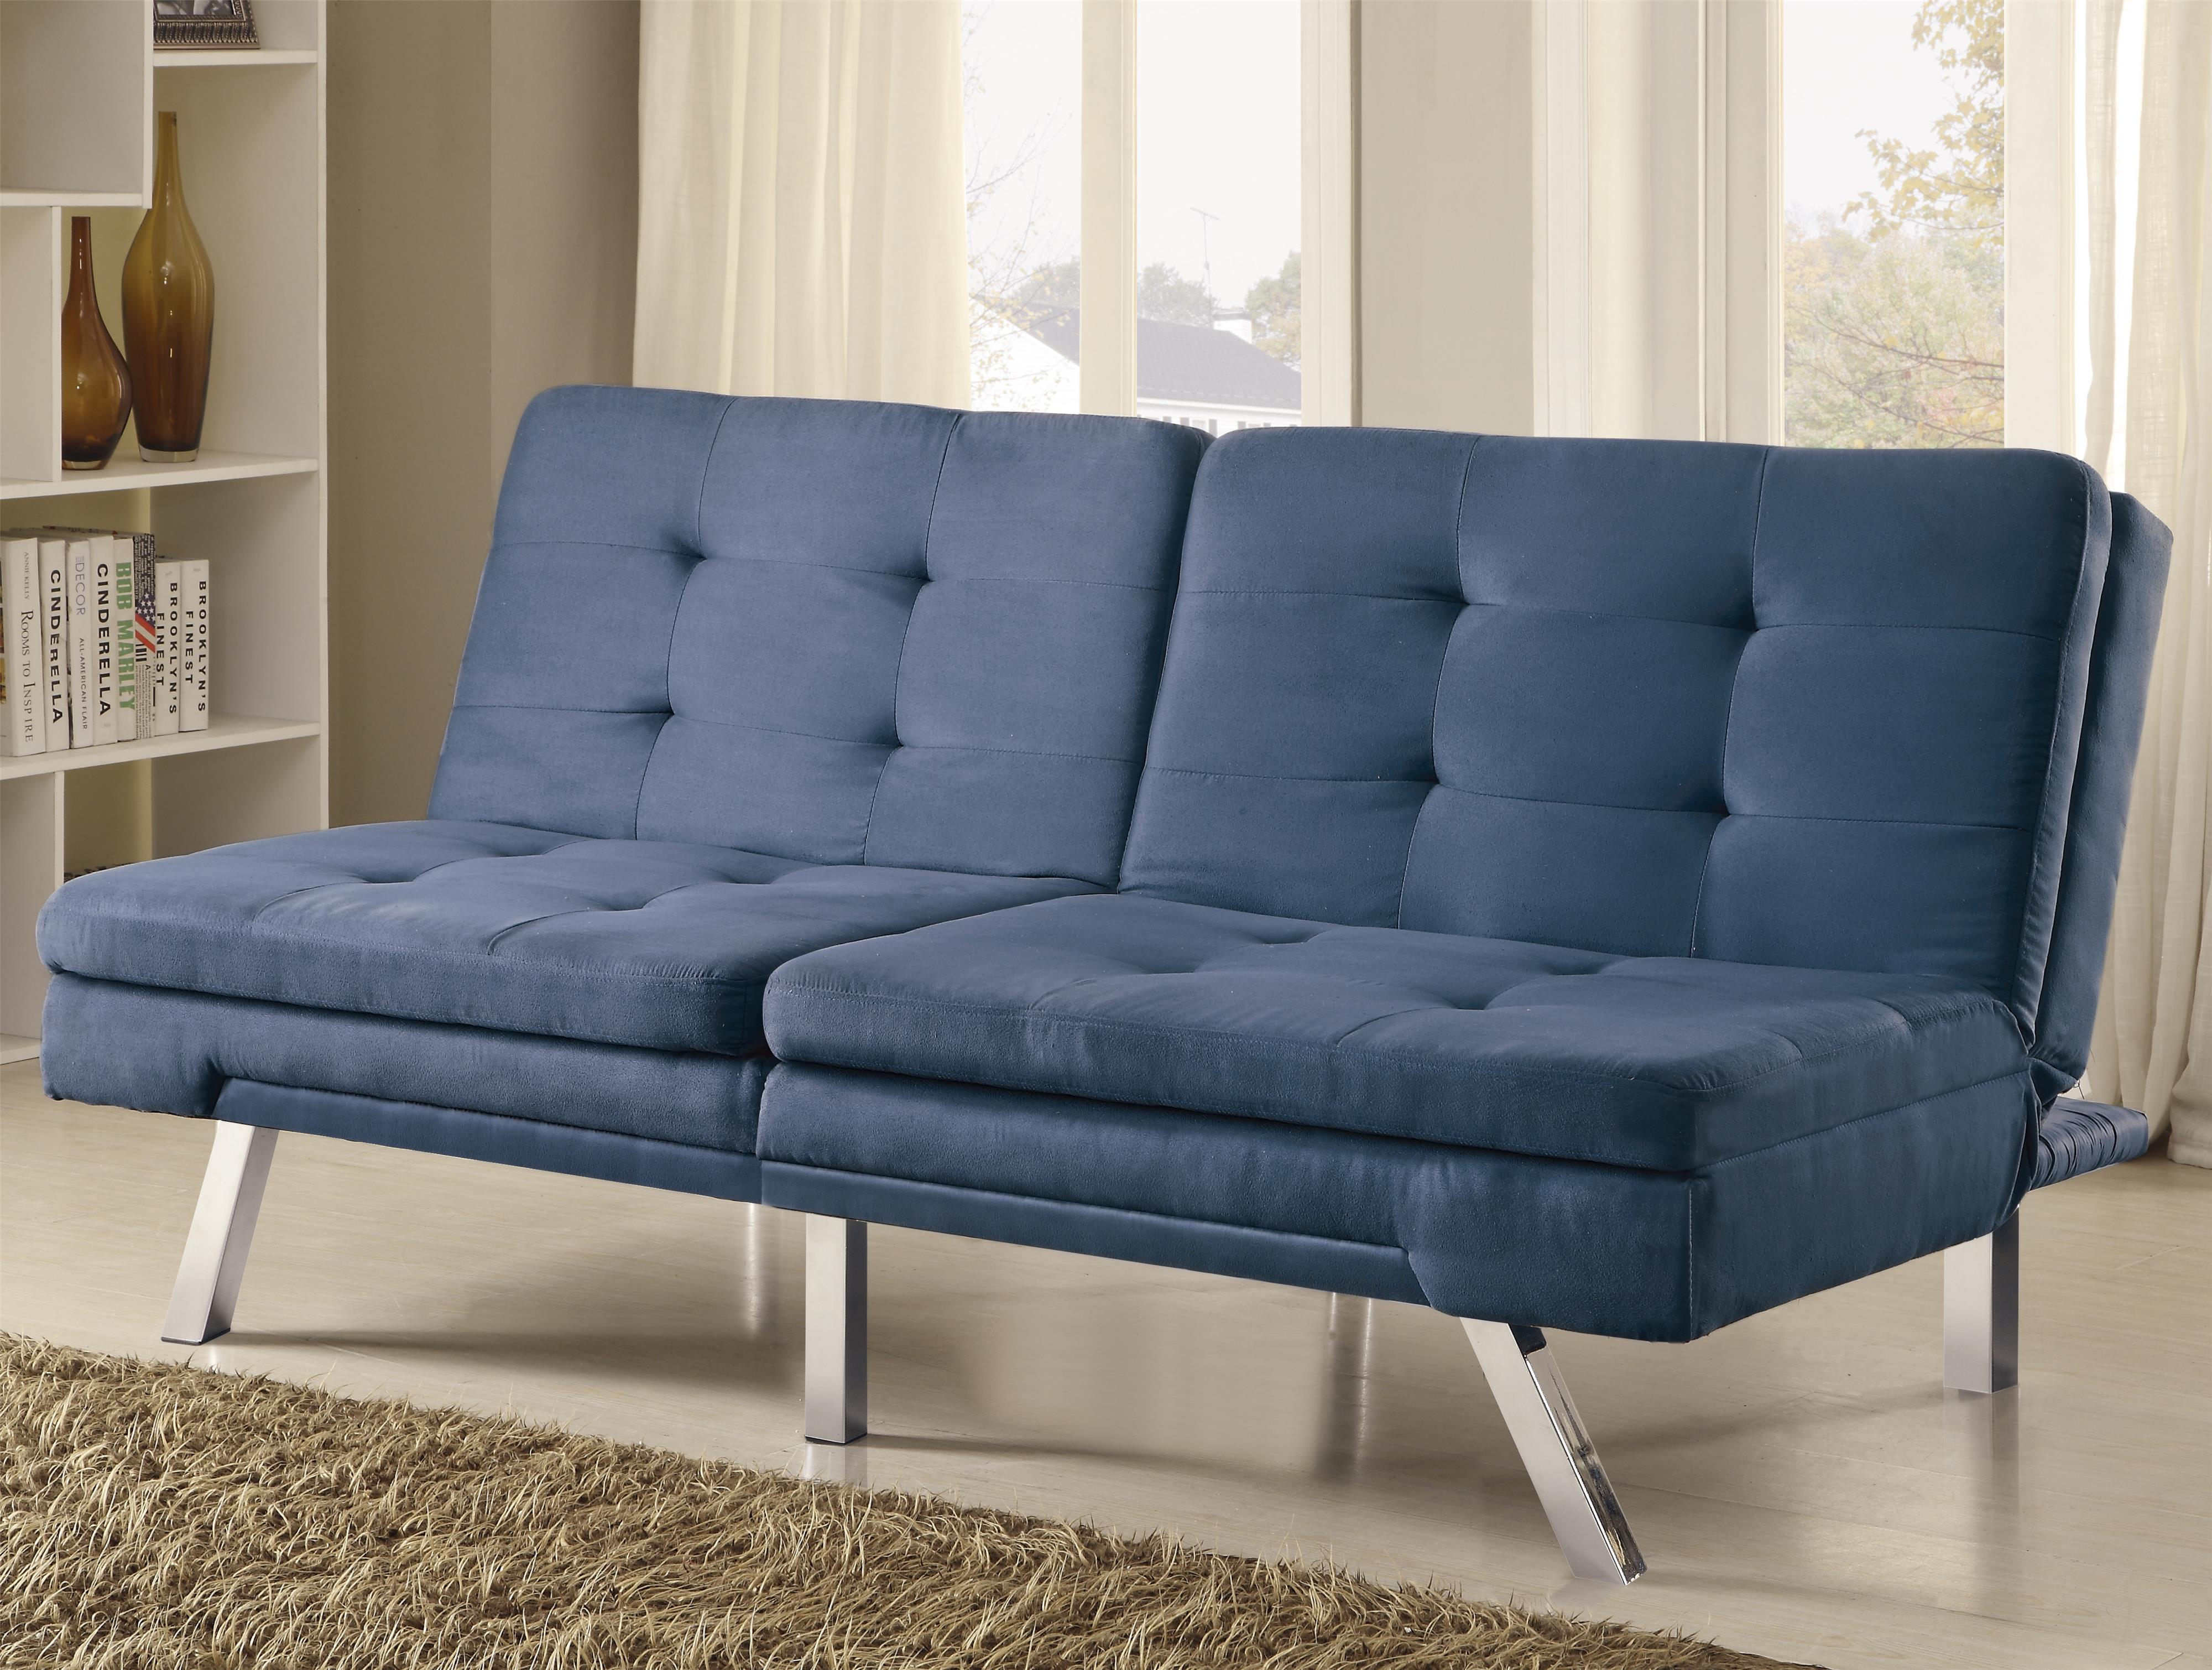 Coaster Sofa Beds and Futons -  Sofa Bed - Item Number: 300212